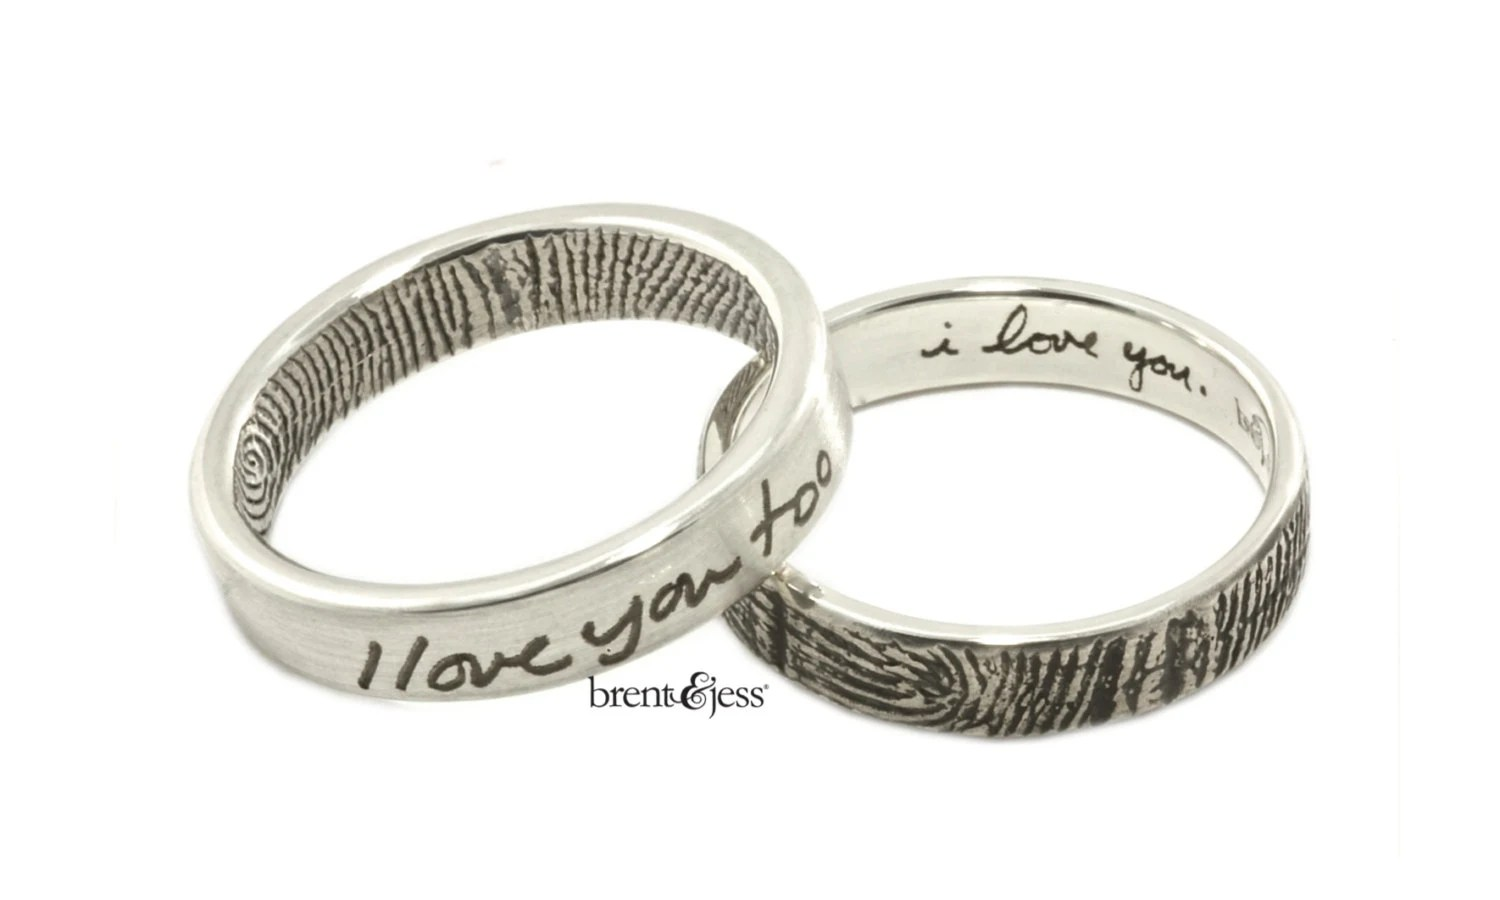 i love youi love you too set of two fingerprint wedding band fingerprint wedding zoom